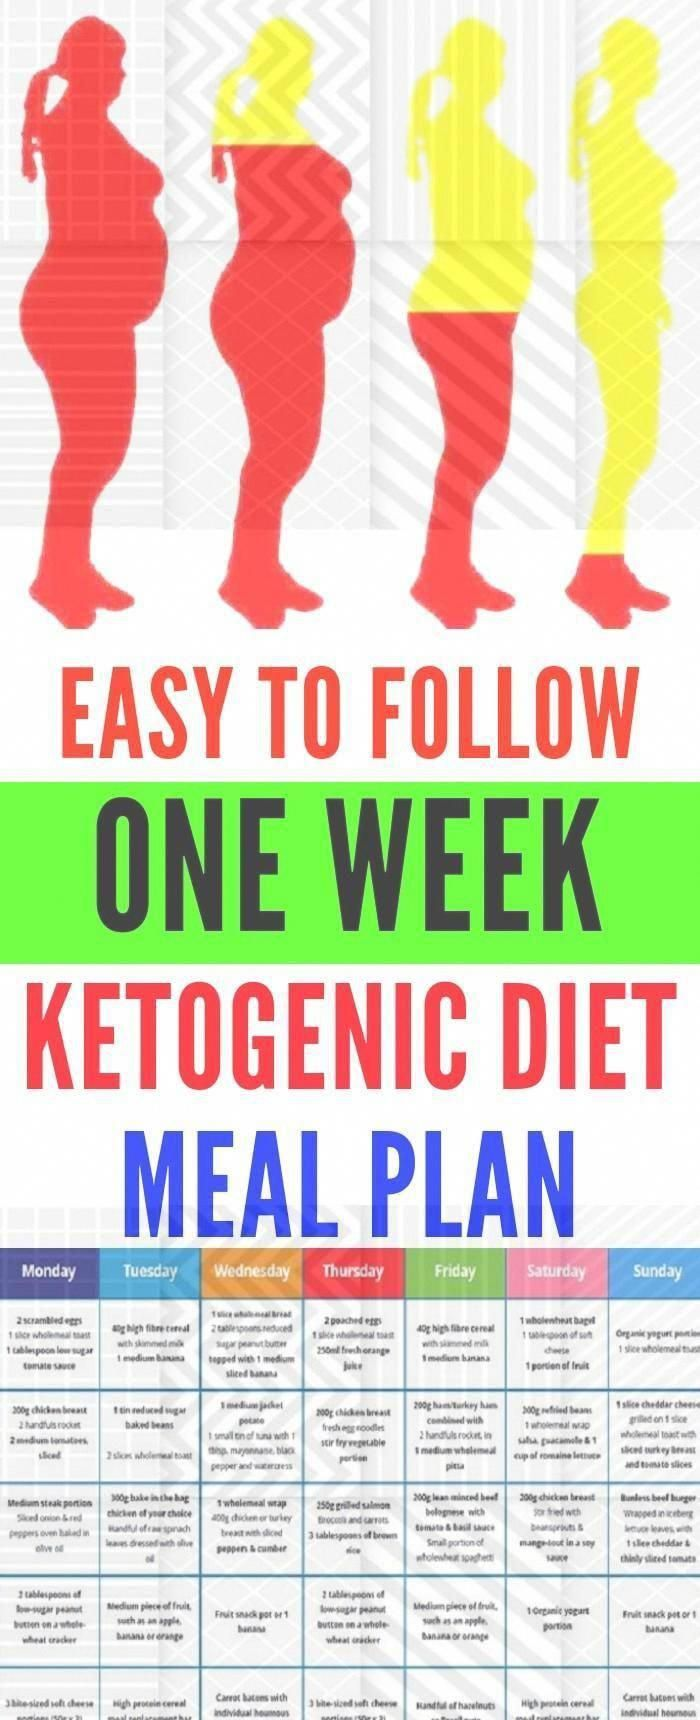 1-Week Ketogenic Diet Meal Plan Intended To Fight Heart Disease, Diabetes, Cance...,  #1week #Cance #diabetes #Diet #disease #fight #heart #intended #Ketogenic #KetogenicDietcancer #Meal #Plan #TheBestKetogenicDietForWeightLoss